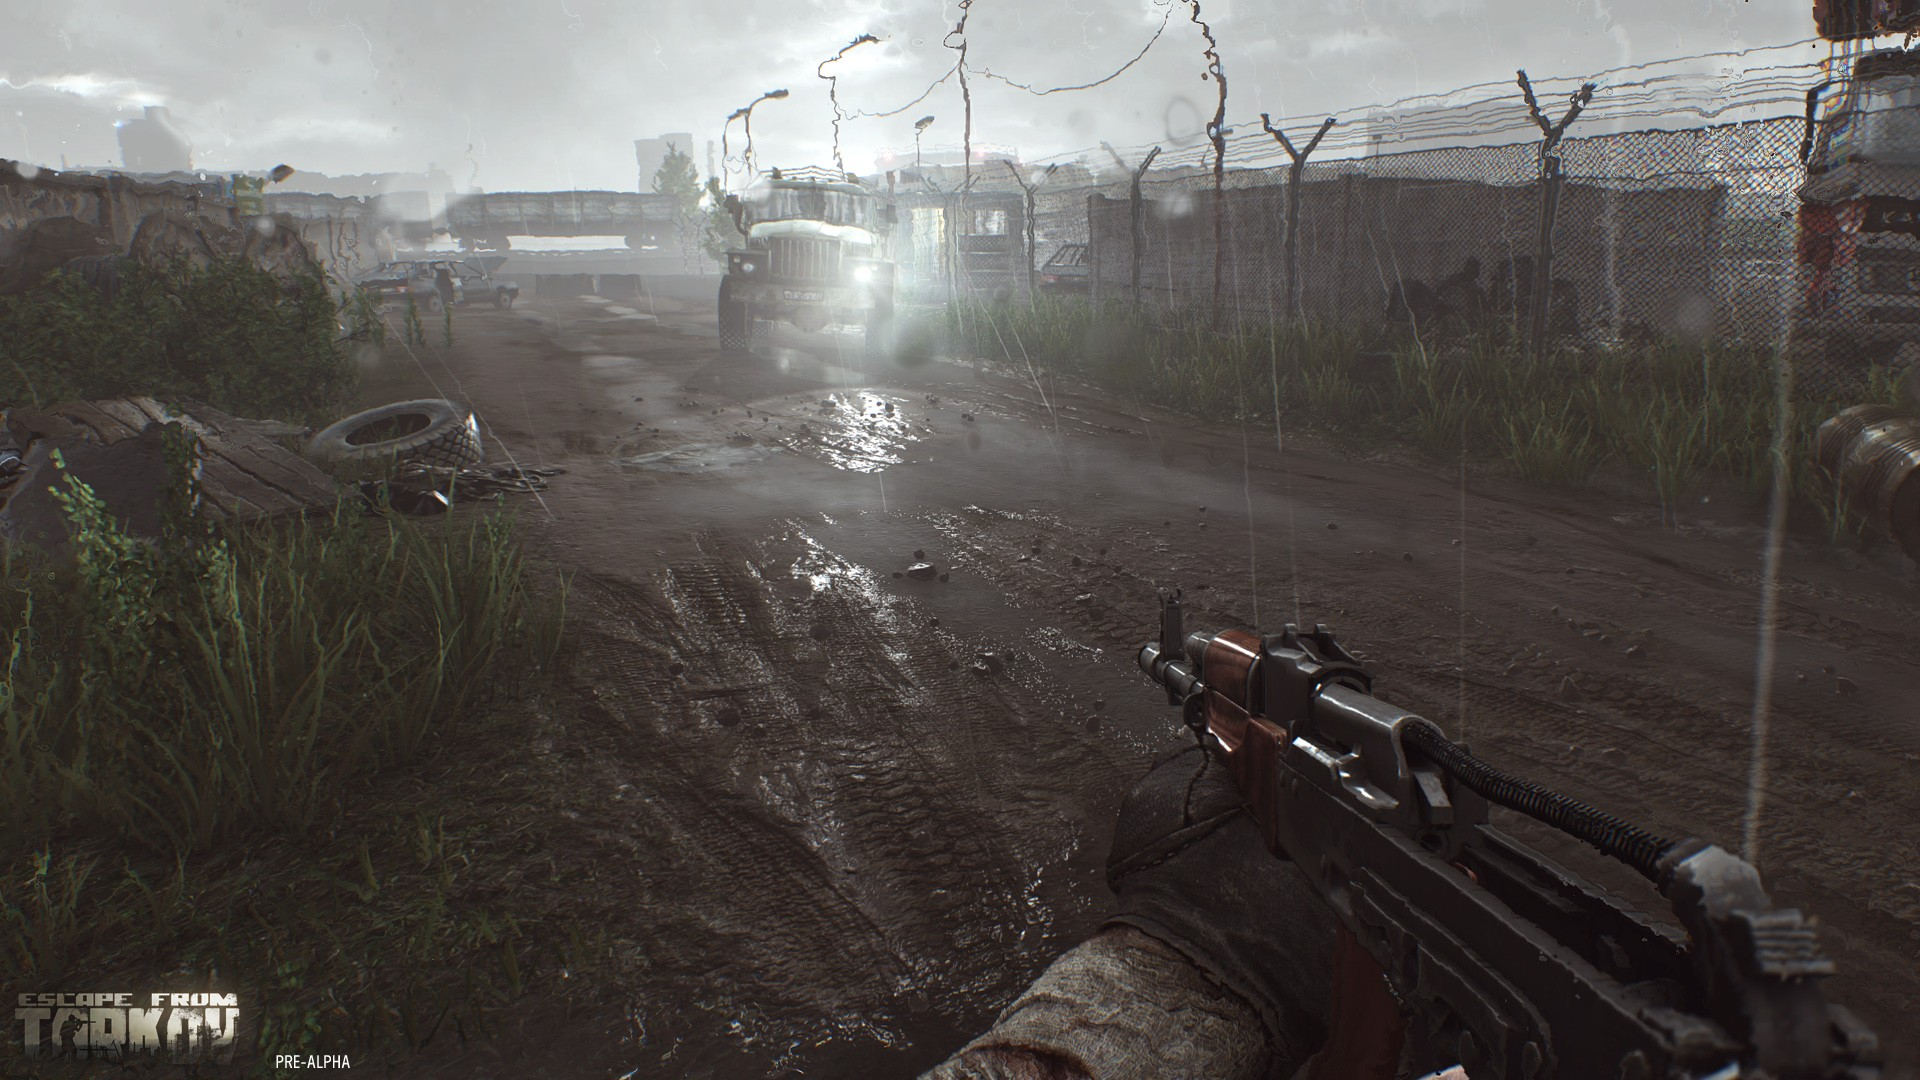 3d Action Wallpaper Hd War Game Escape From Tarkov First Person Shooter